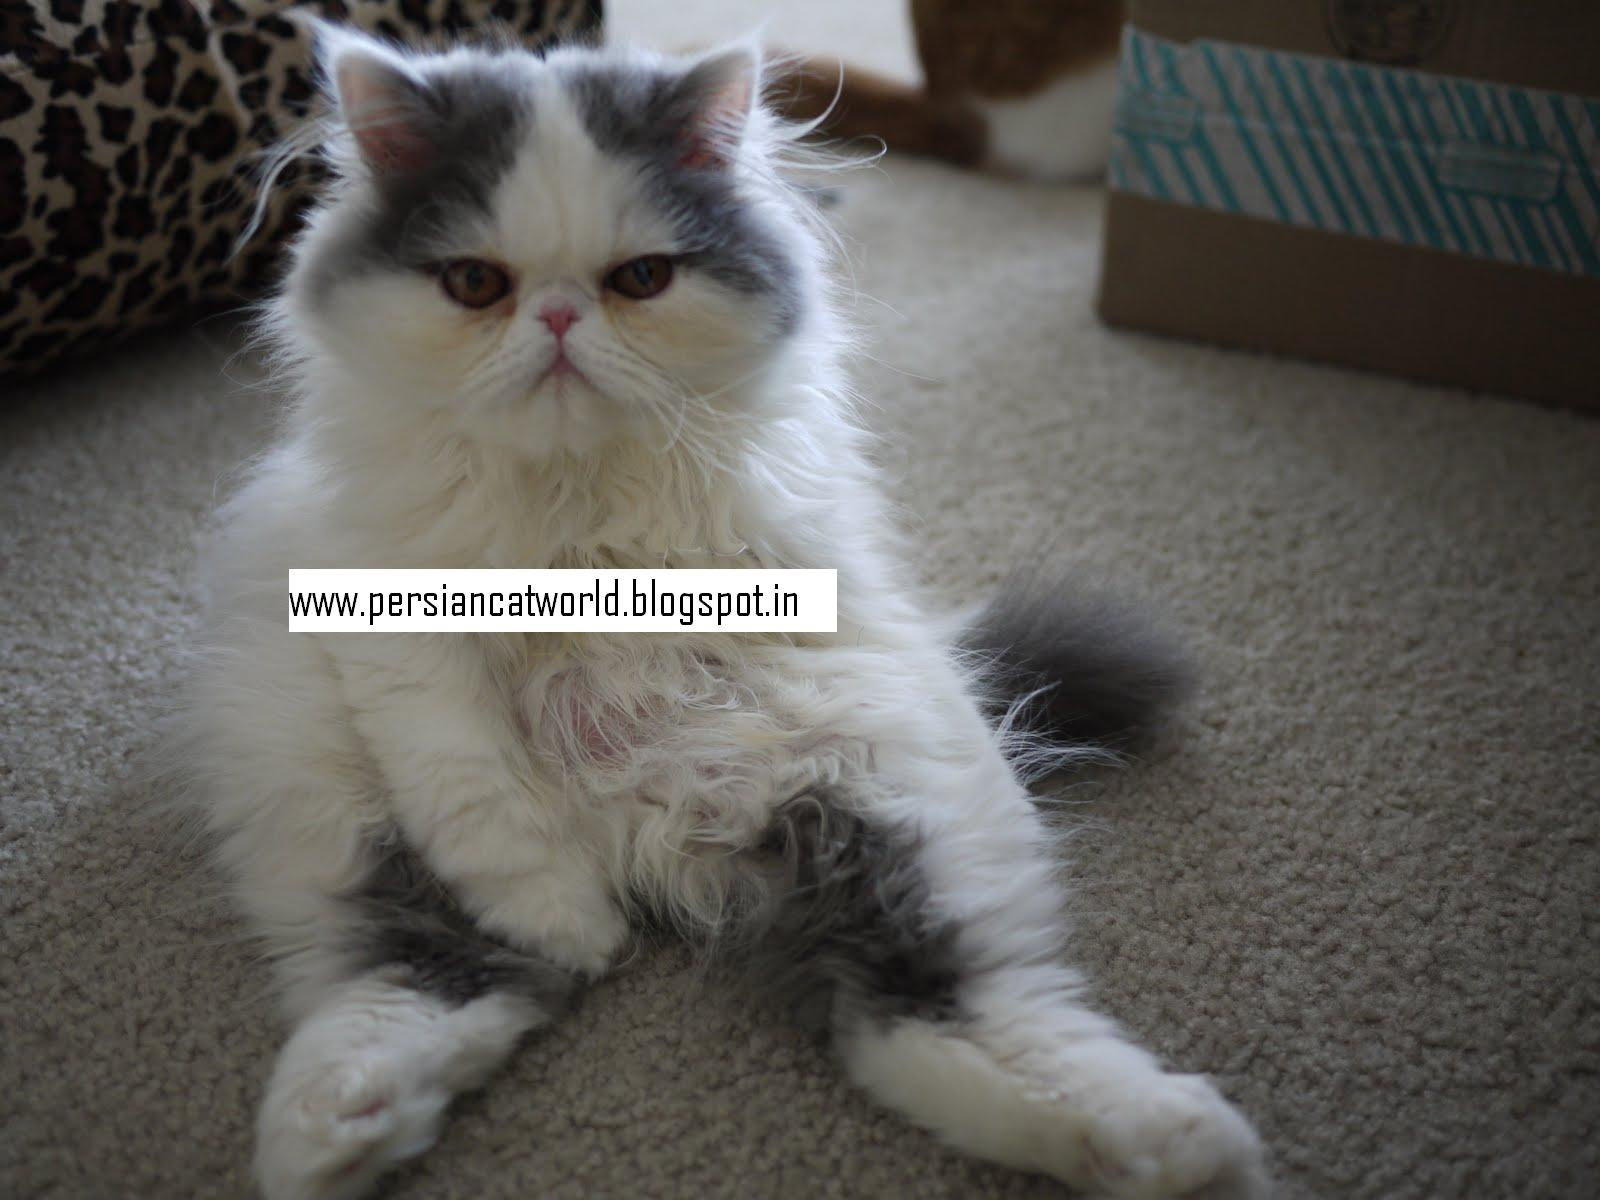 Persian Cat World